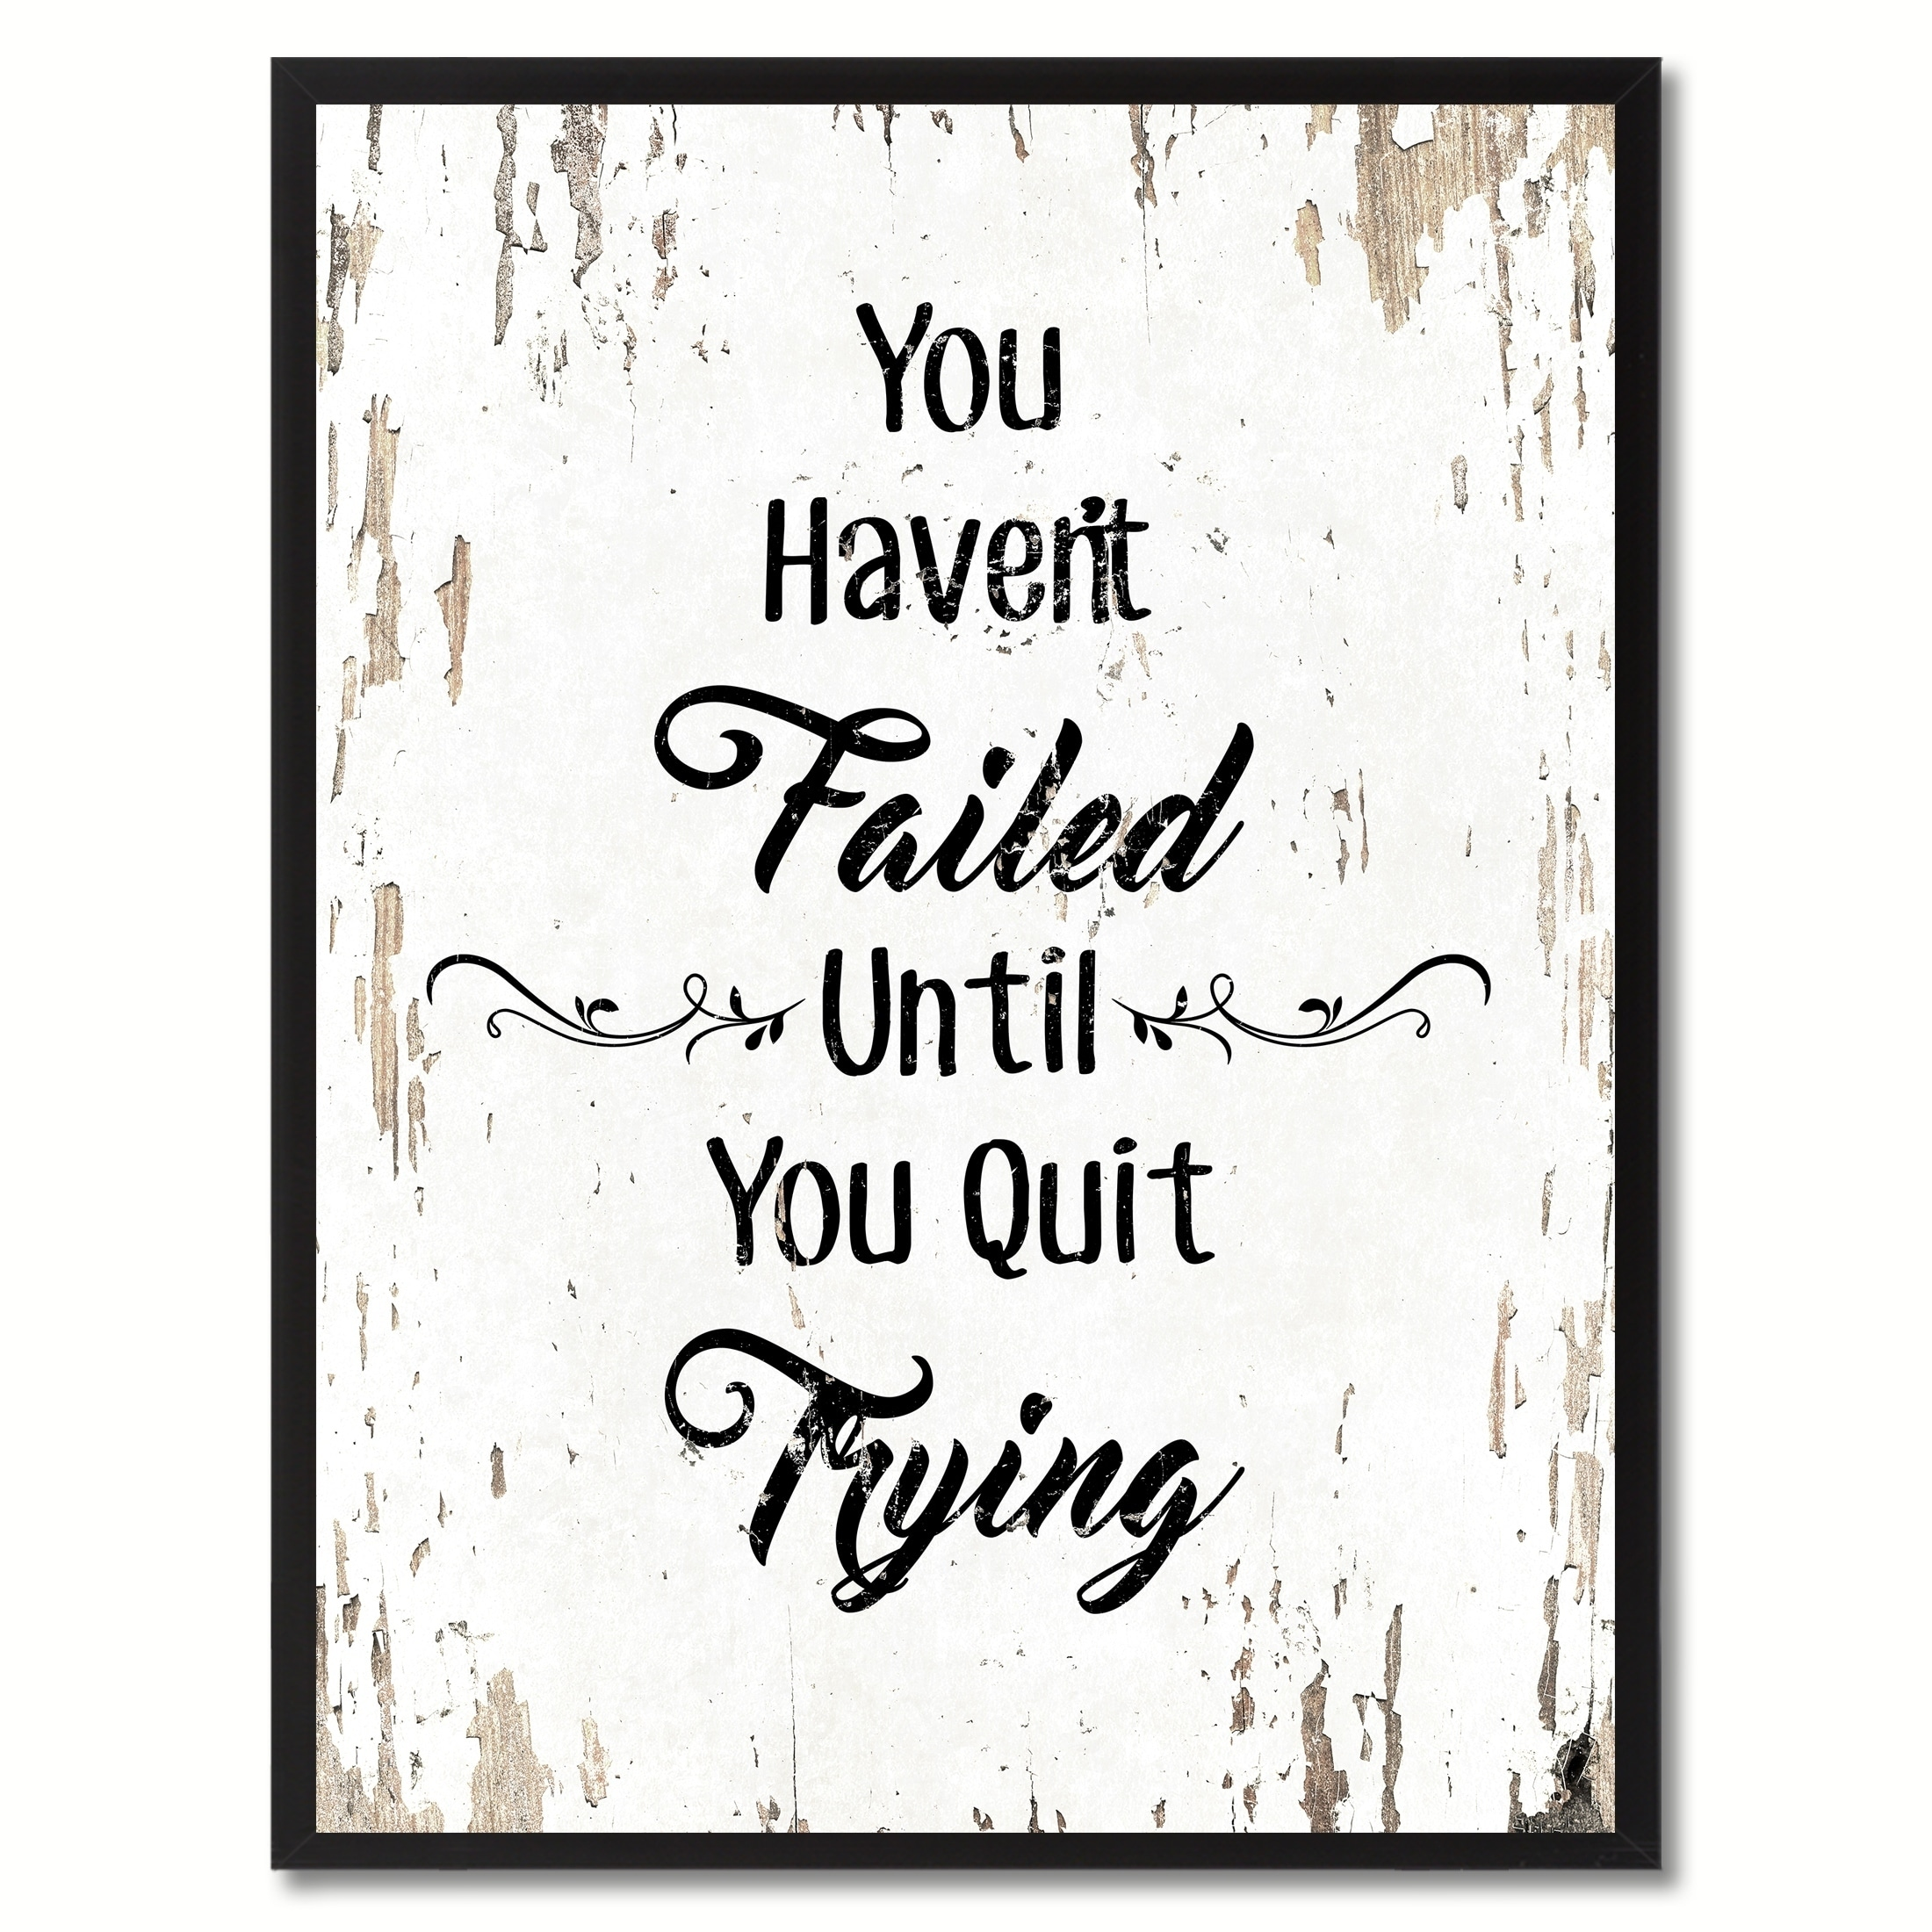 You havent failed until you quit trying motivation quote saying you havent failed until you quit trying motivation quote saying canvas print picture frame home decor wall art free shipping on orders over 45 jeuxipadfo Gallery